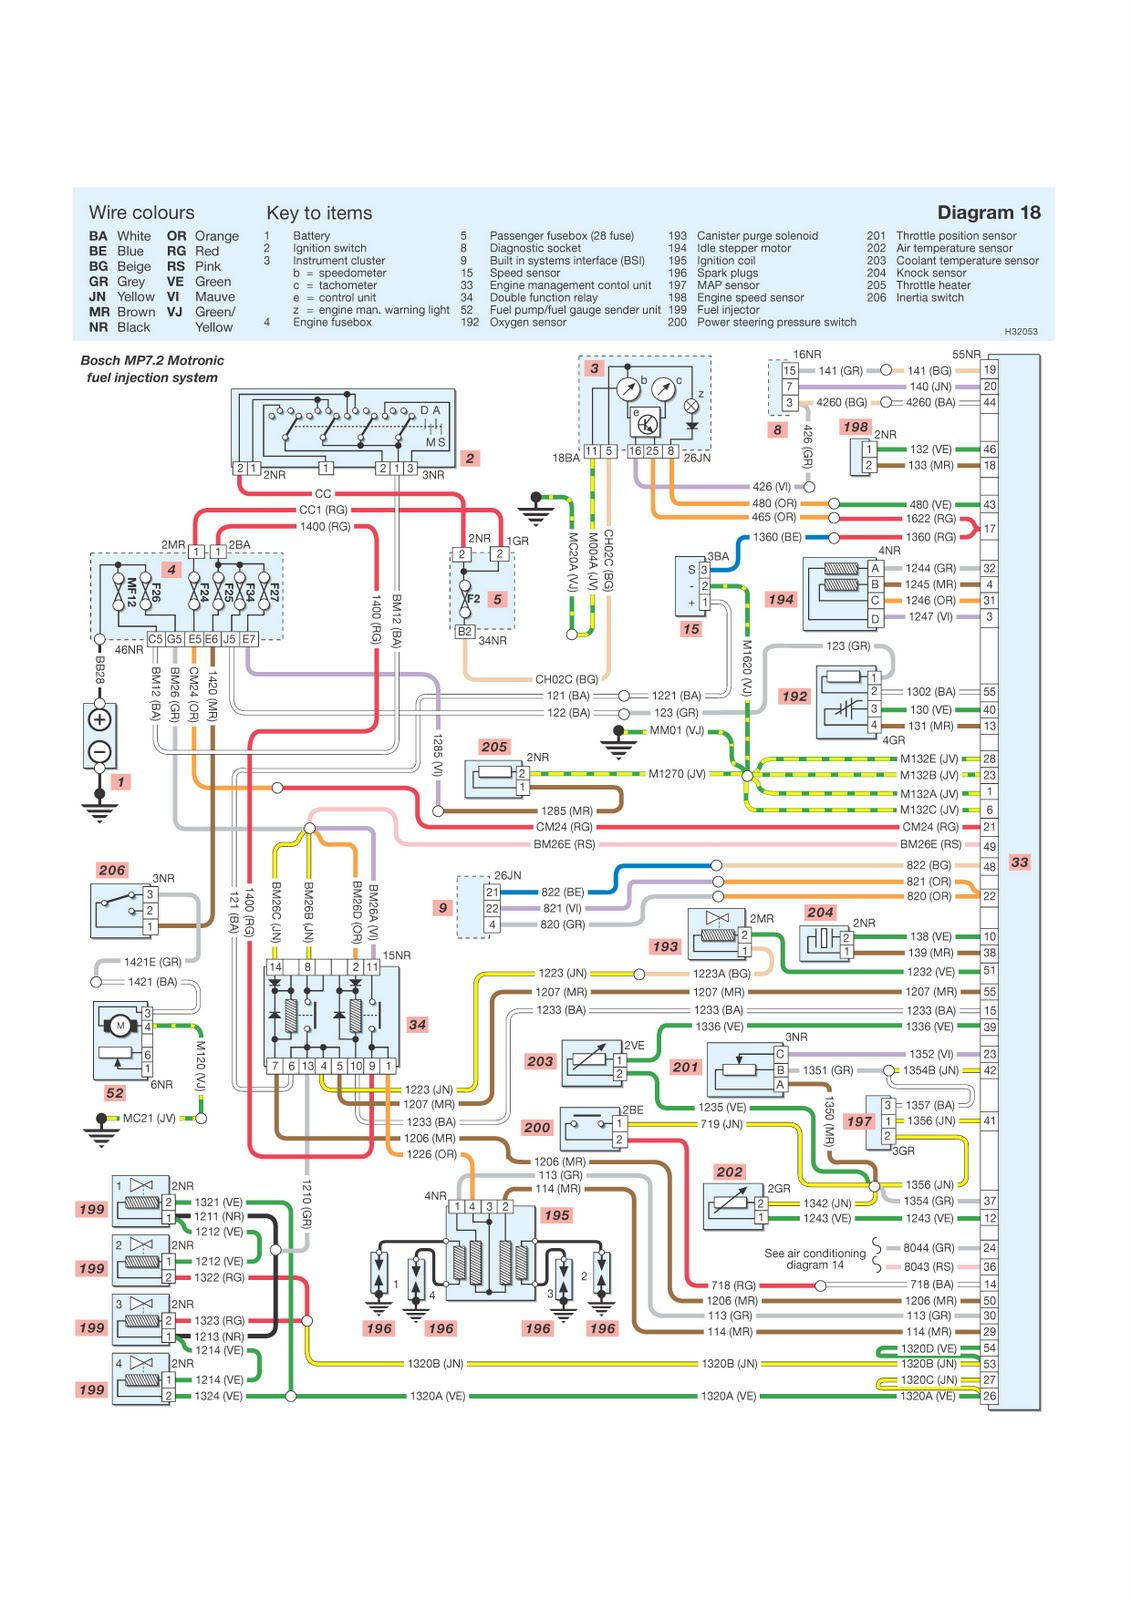 peugeot 206 wiring diagram peugeot wiring diagrams description 0019 peugeot wiring diagram